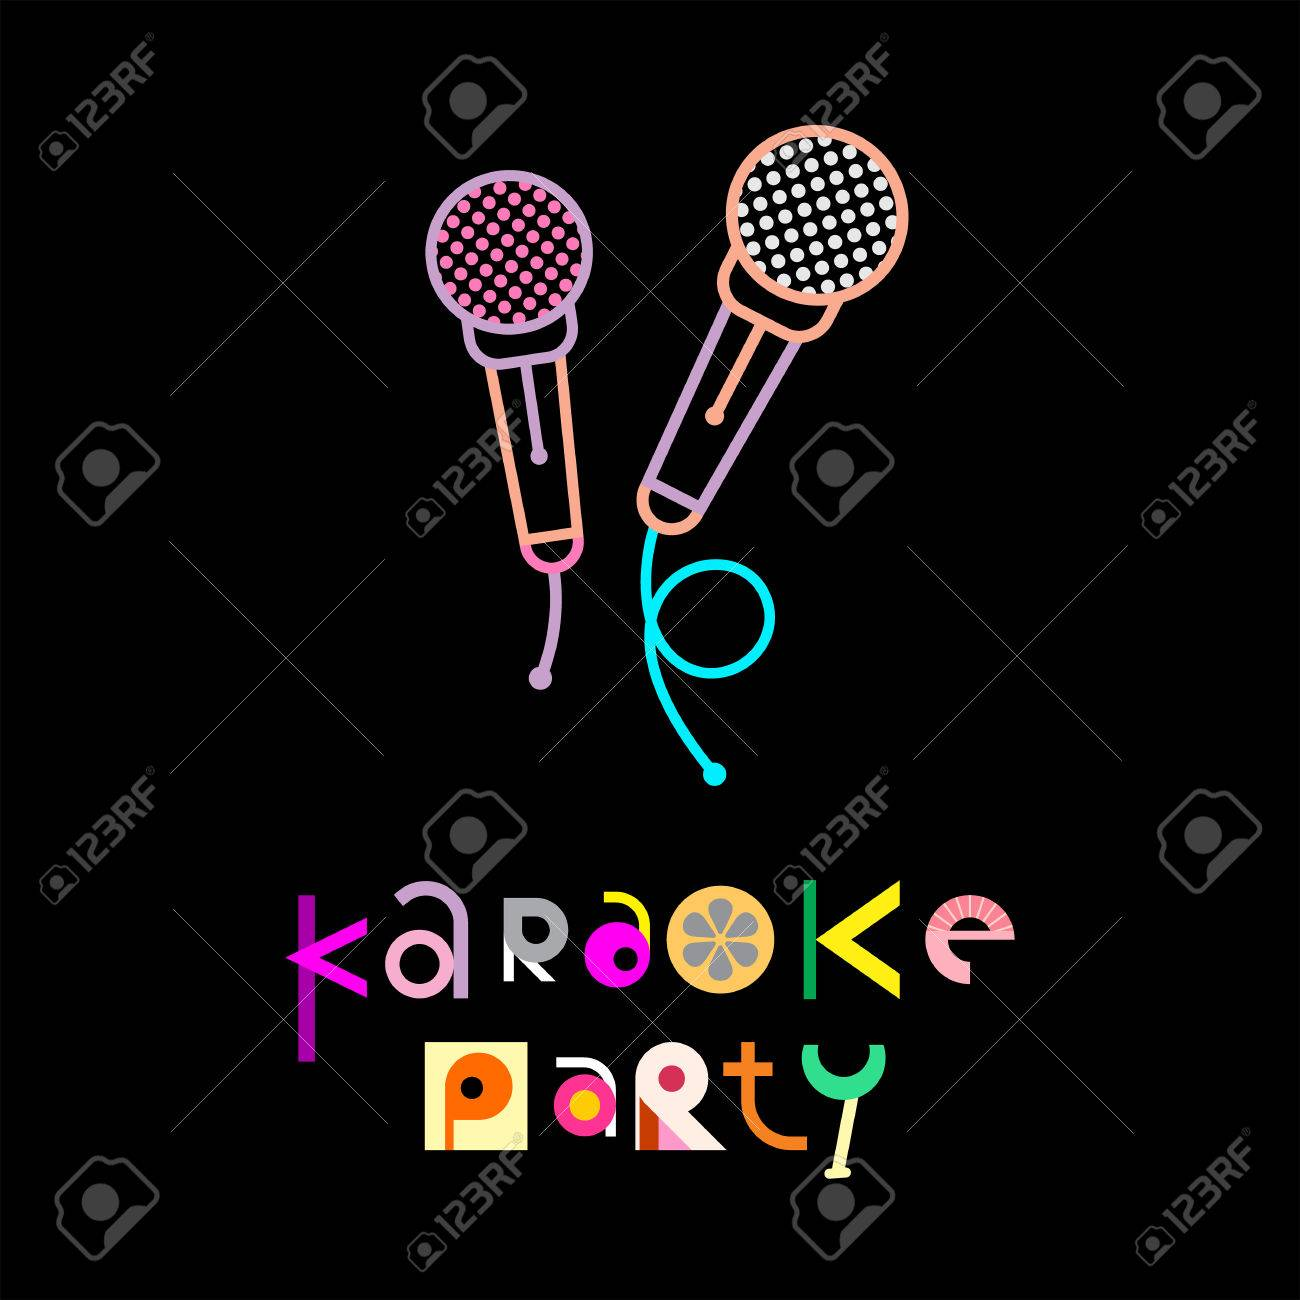 Karaoke Party - Decorative Text Architecture On A Black Background ...